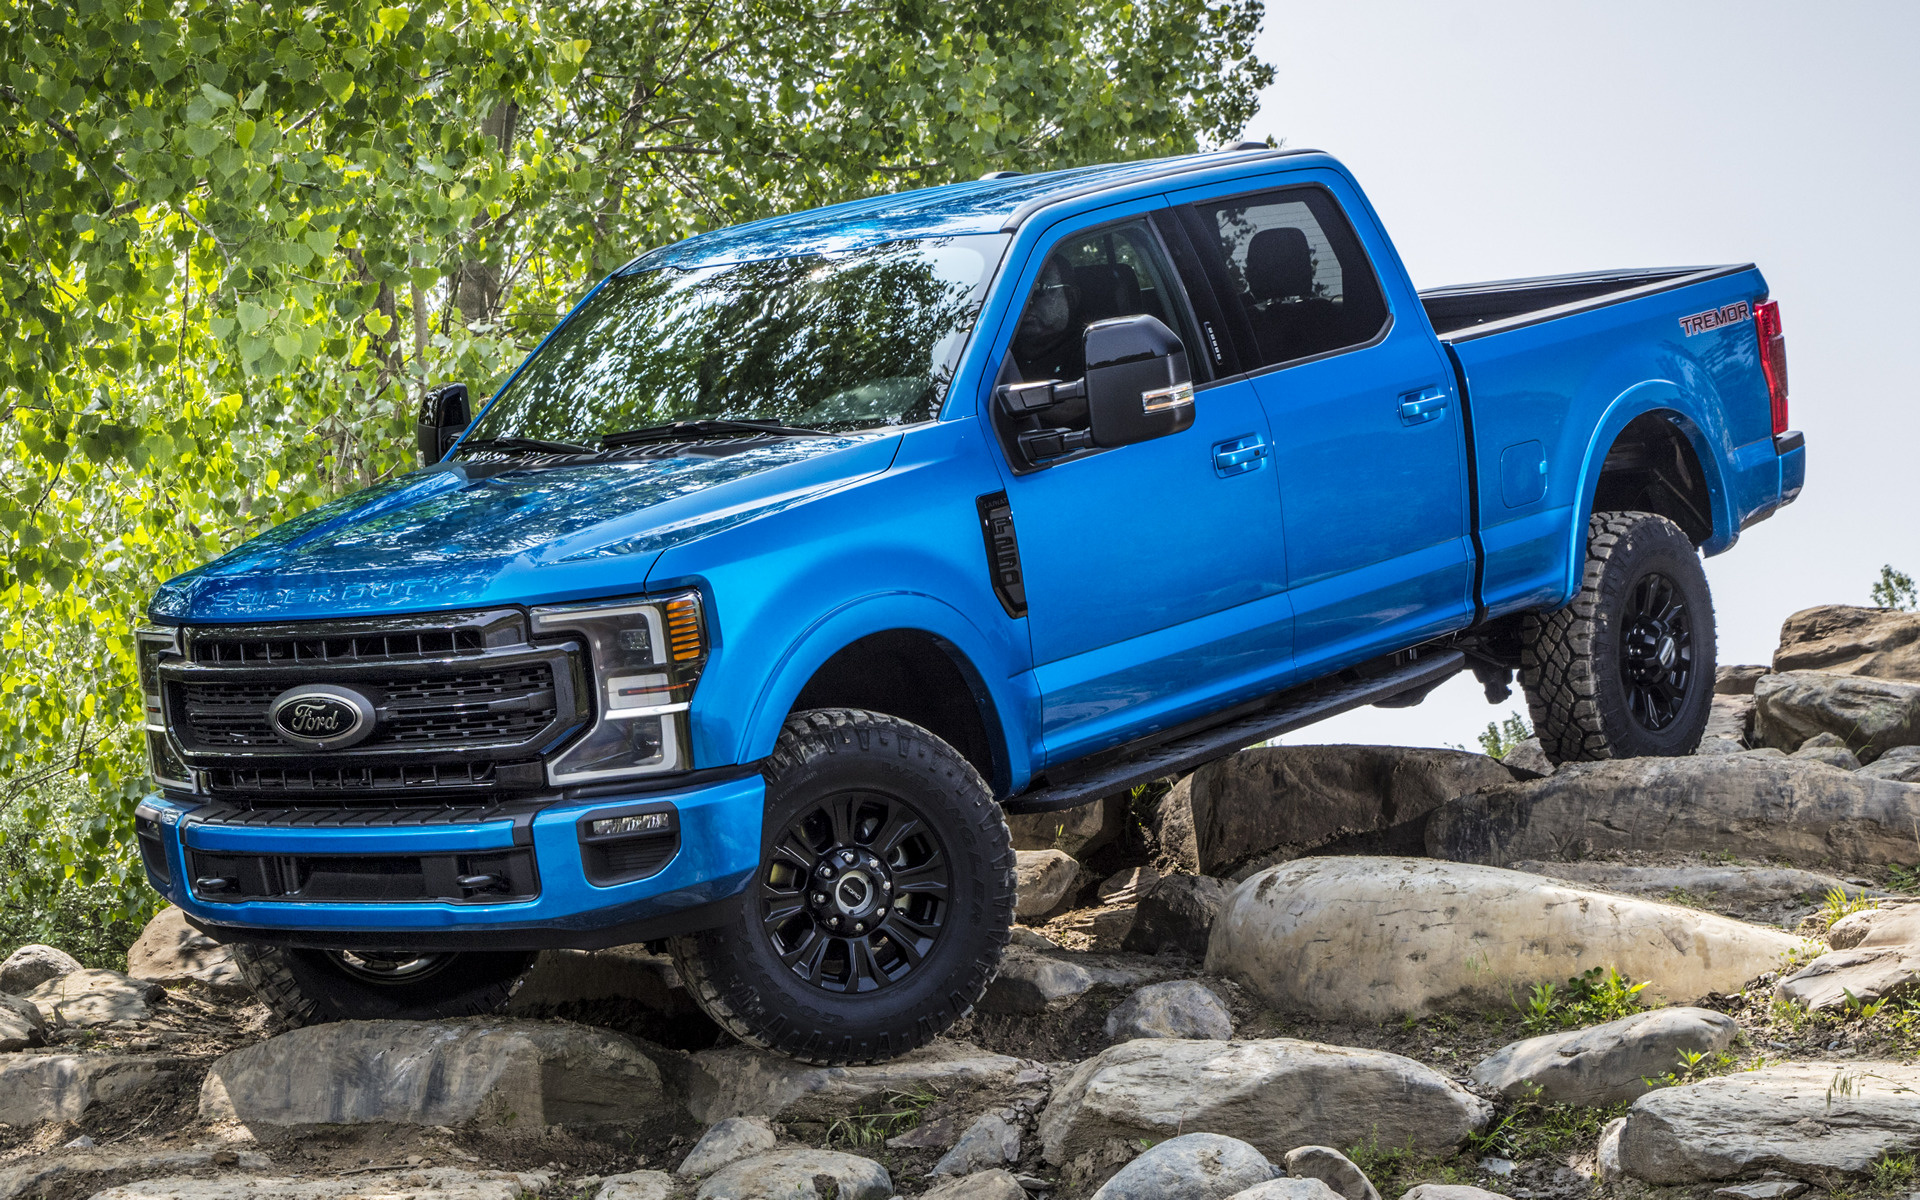 2020 Ford F-250 Super Duty Lariat Tremor Crew Cab Off-road Package